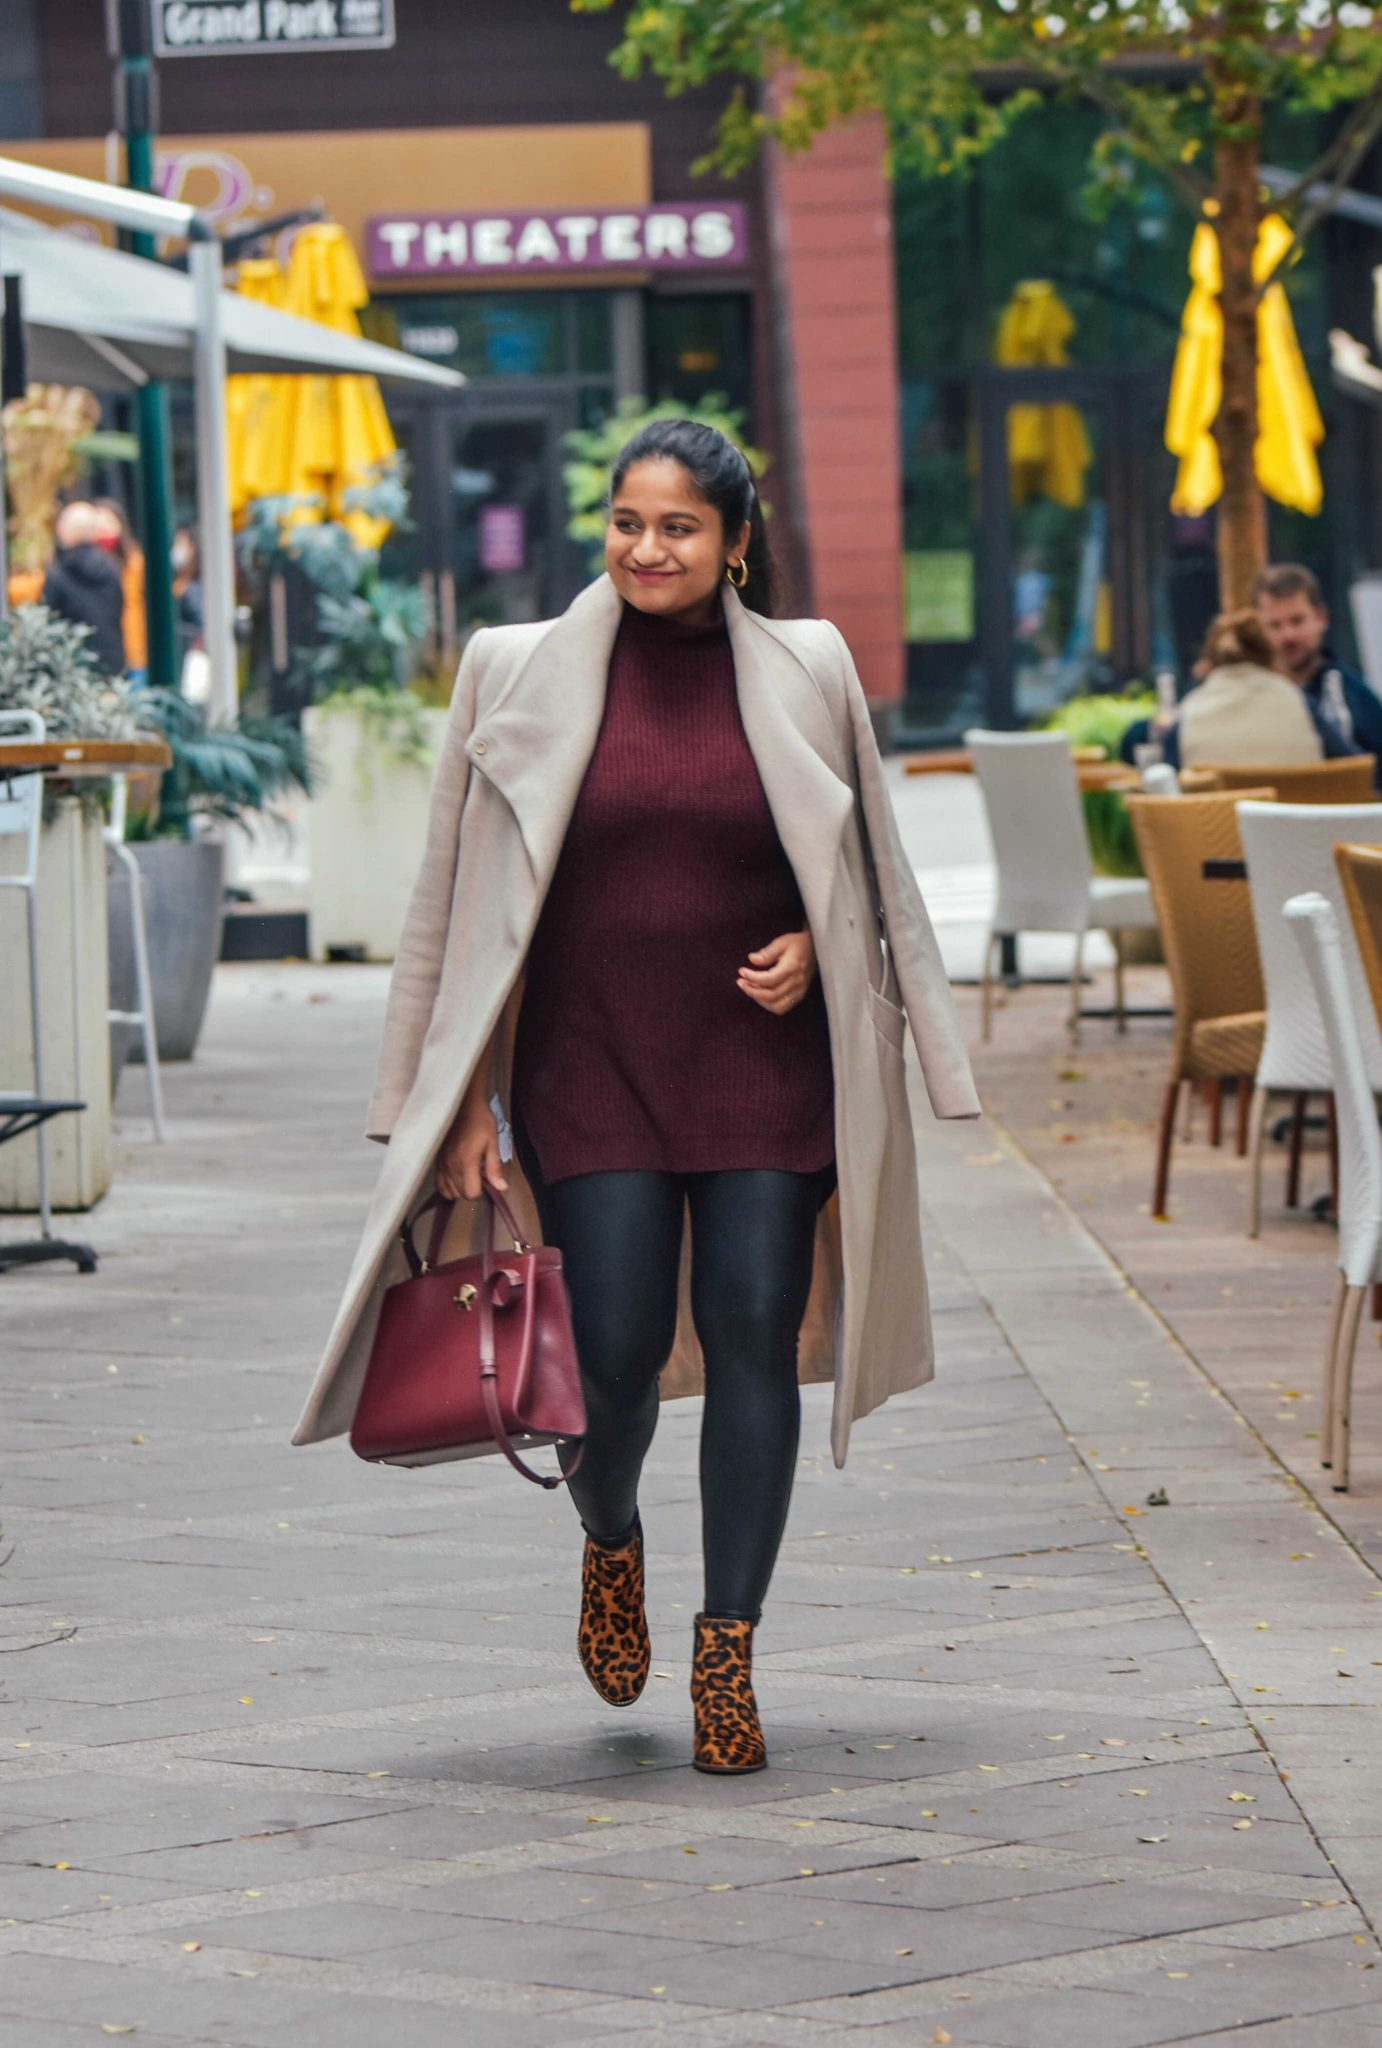 Style Spanx Faux leather legging, Mango belted Wrap coat in Ecru, Katespade Romy medium Satchel in Merlot-maternity style |Cute Thanksgiving Outfits by popular Maryland modest fashion blog, Dreaming Loud: image of a woman wearing Spanx Faux leather legging, wrap coat, leopard print boots and carrying a Kate spade Romy Satchel